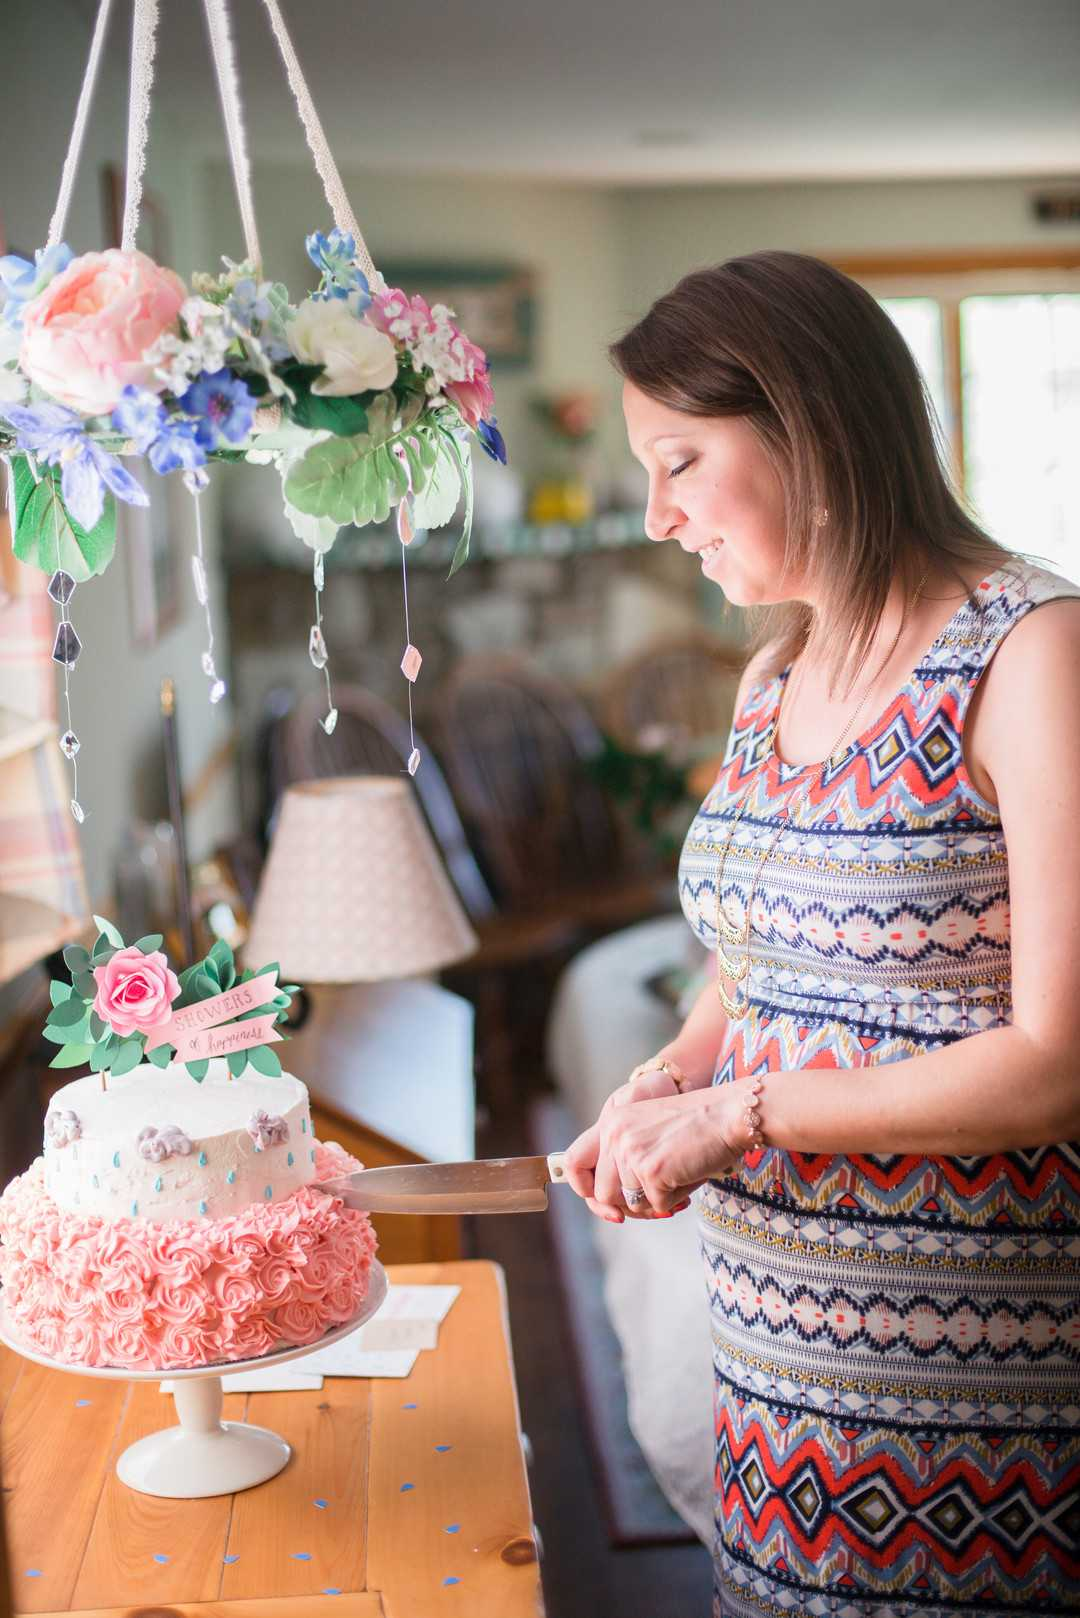 Cake | An April Showers Brings May Flowers Baby Shower | Kate Aspen